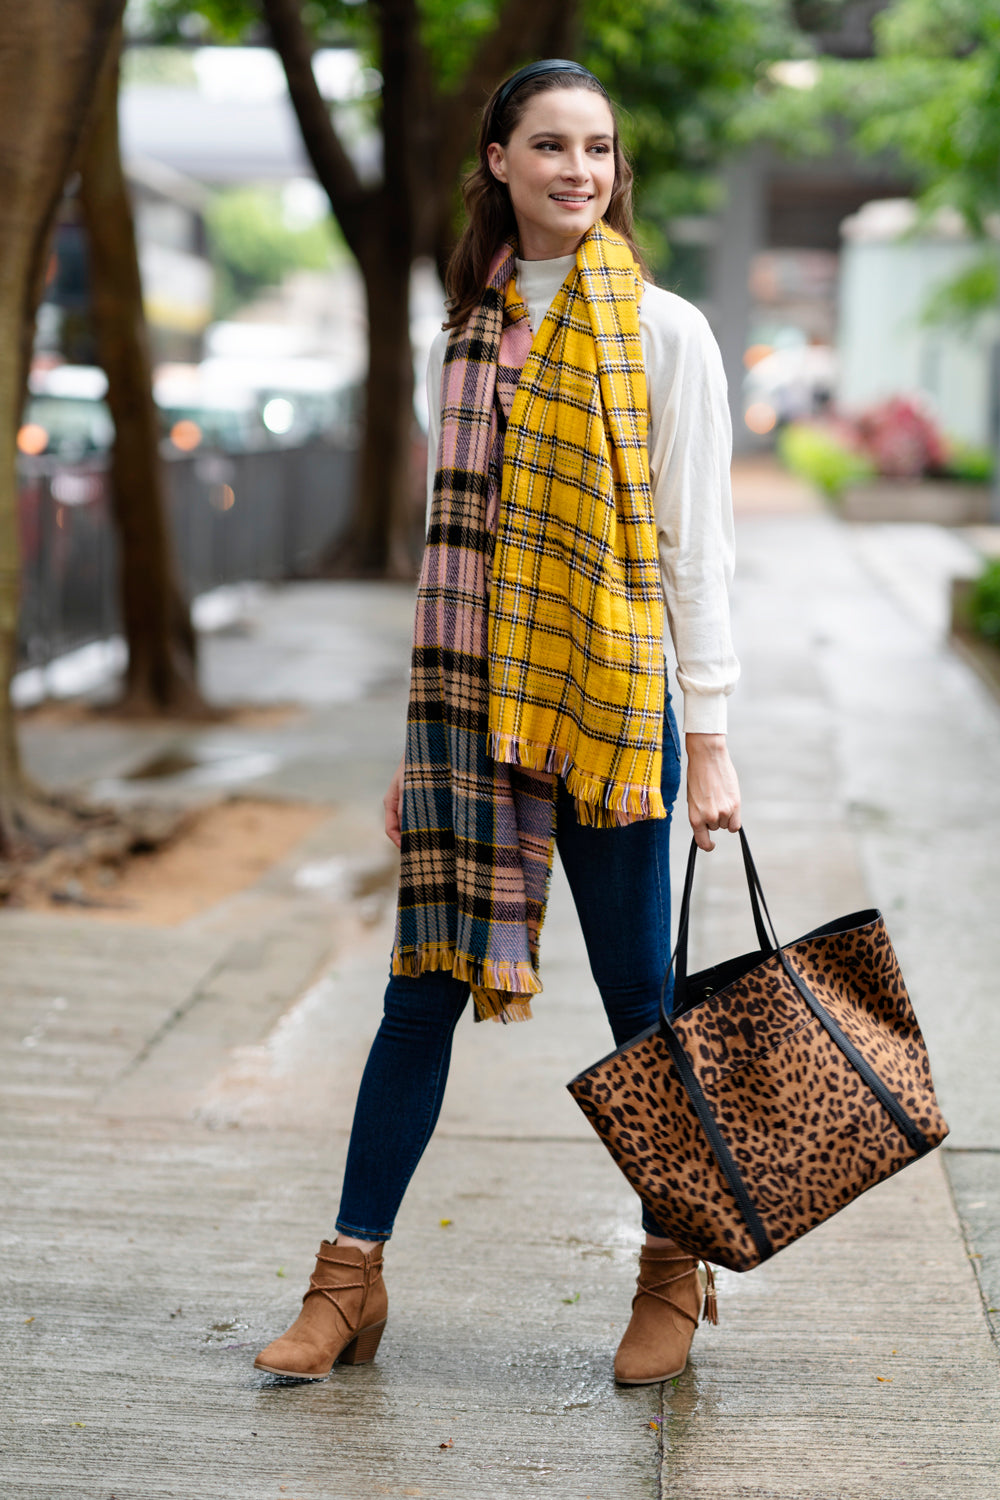 Fresh for Fall: Leopard Print Purses and Fluffy Fall Scarves.